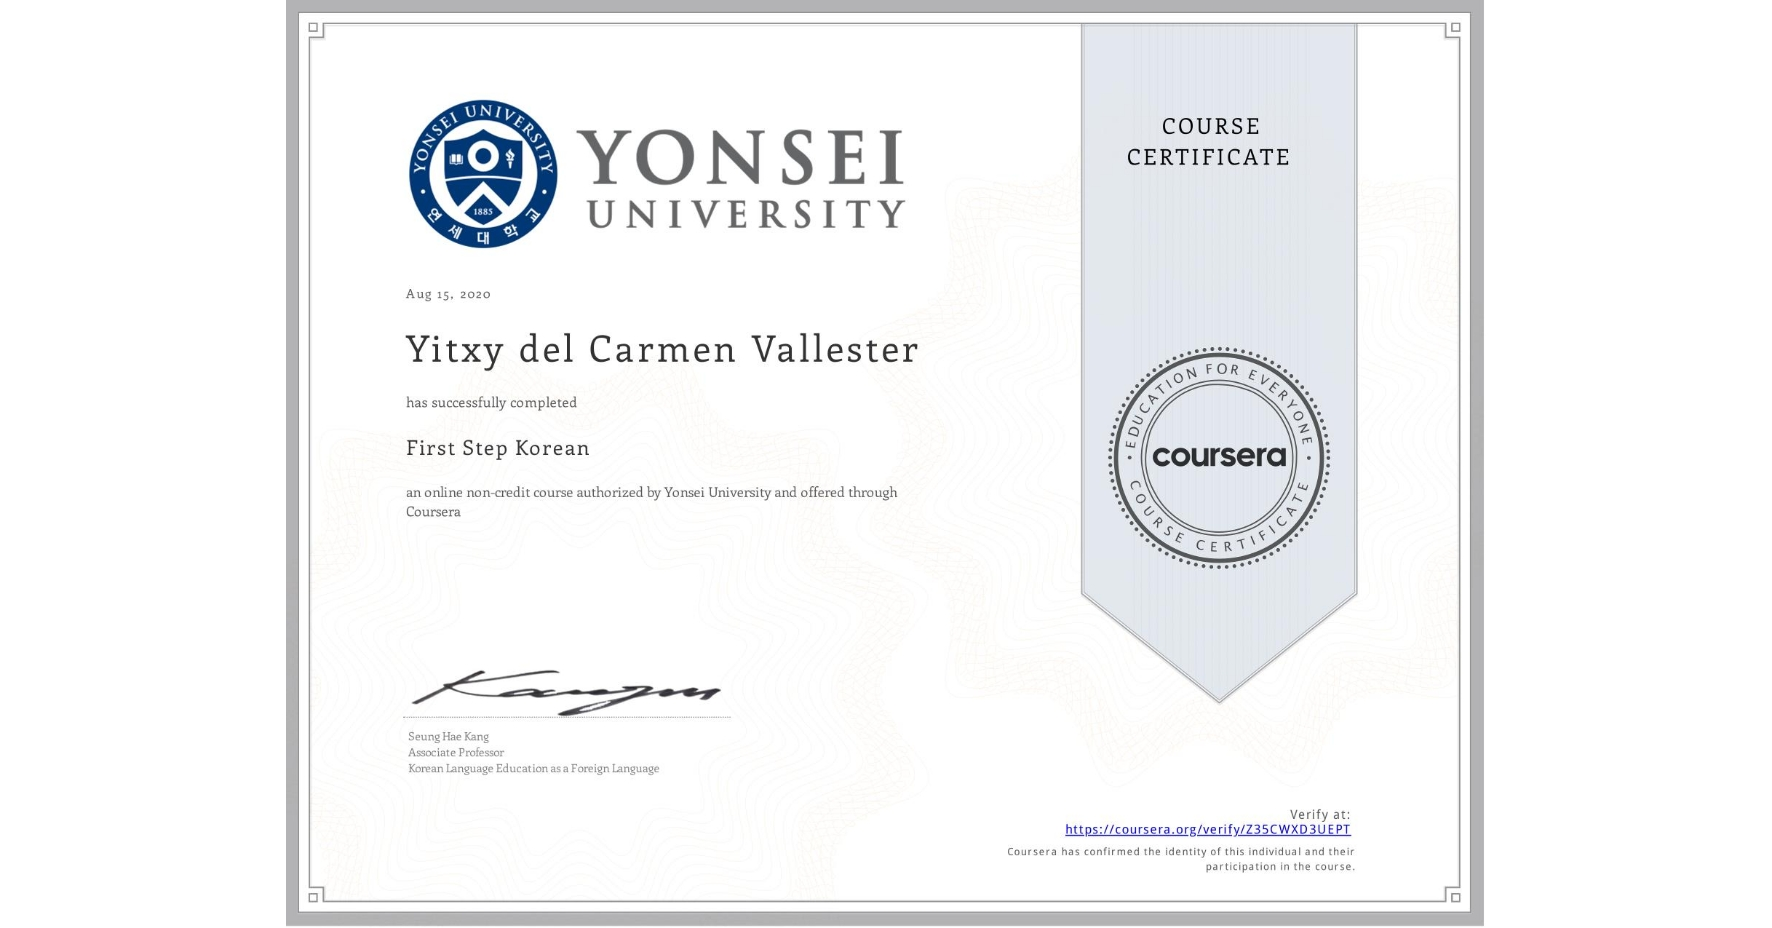 View certificate for Yitxy del Carmen Vallester, First Step Korean, an online non-credit course authorized by Yonsei University and offered through Coursera